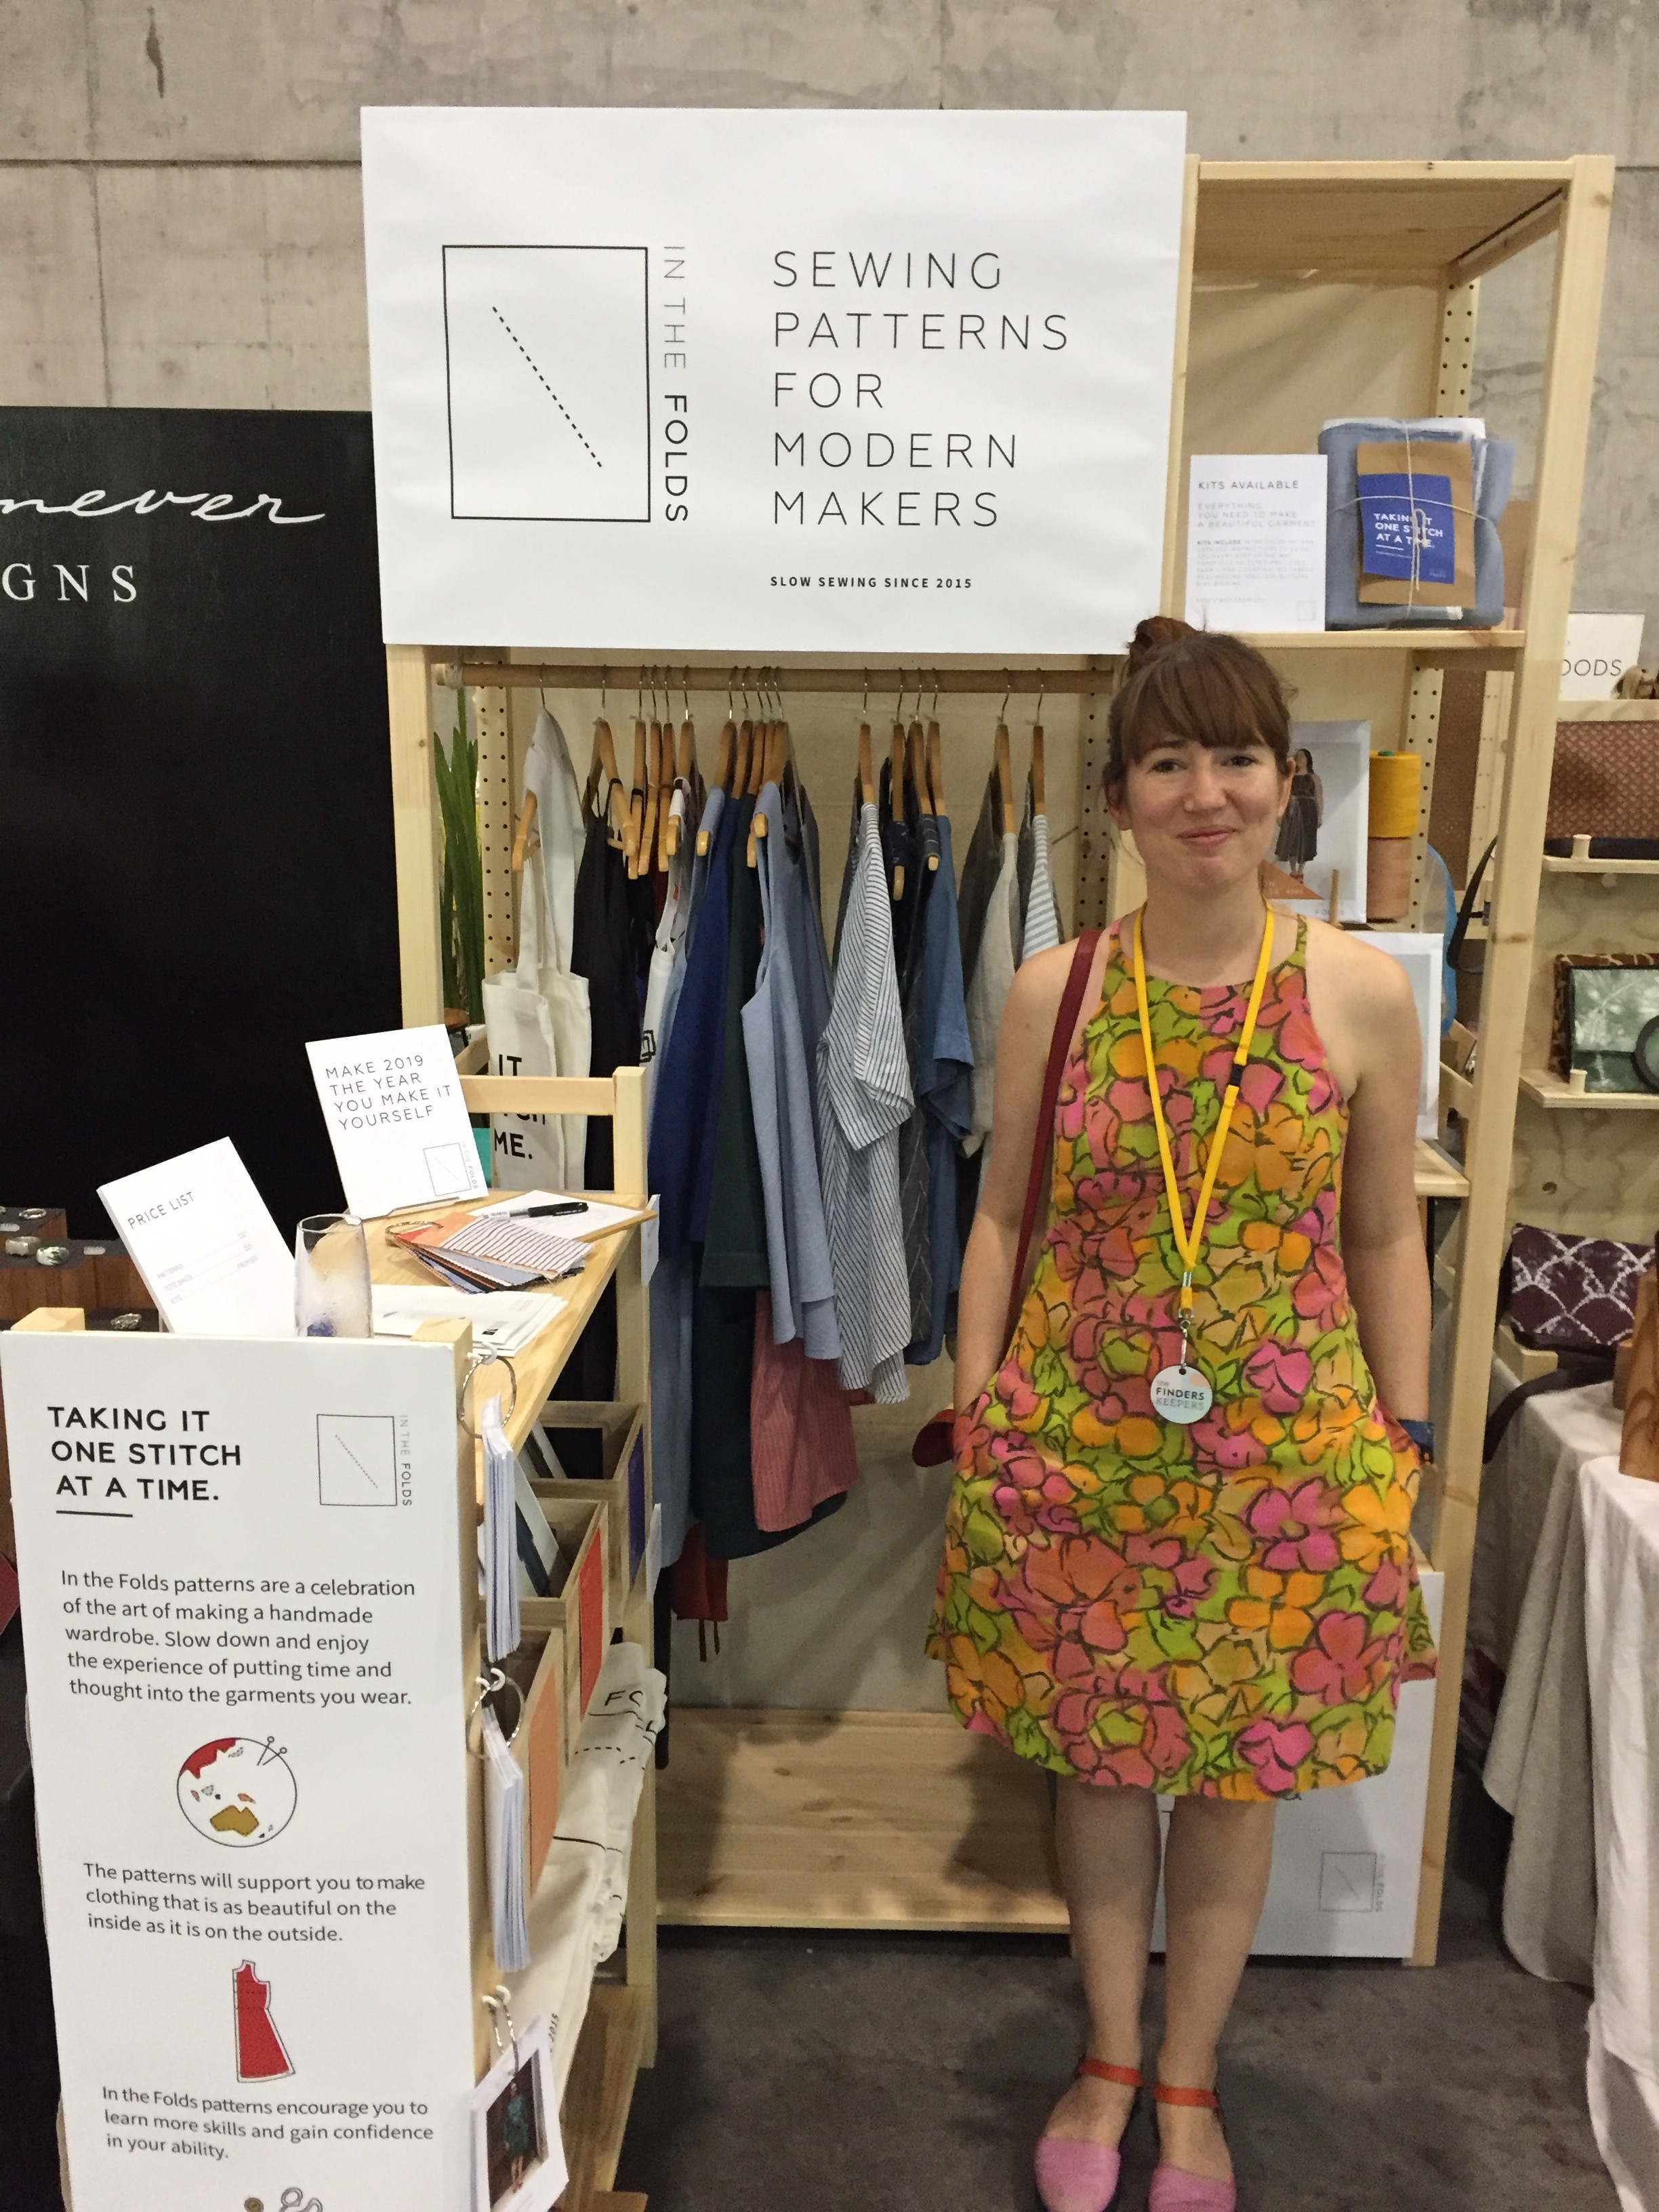 Me at Finders Keepers in Acton dress made from pre-loved vintage fabric.